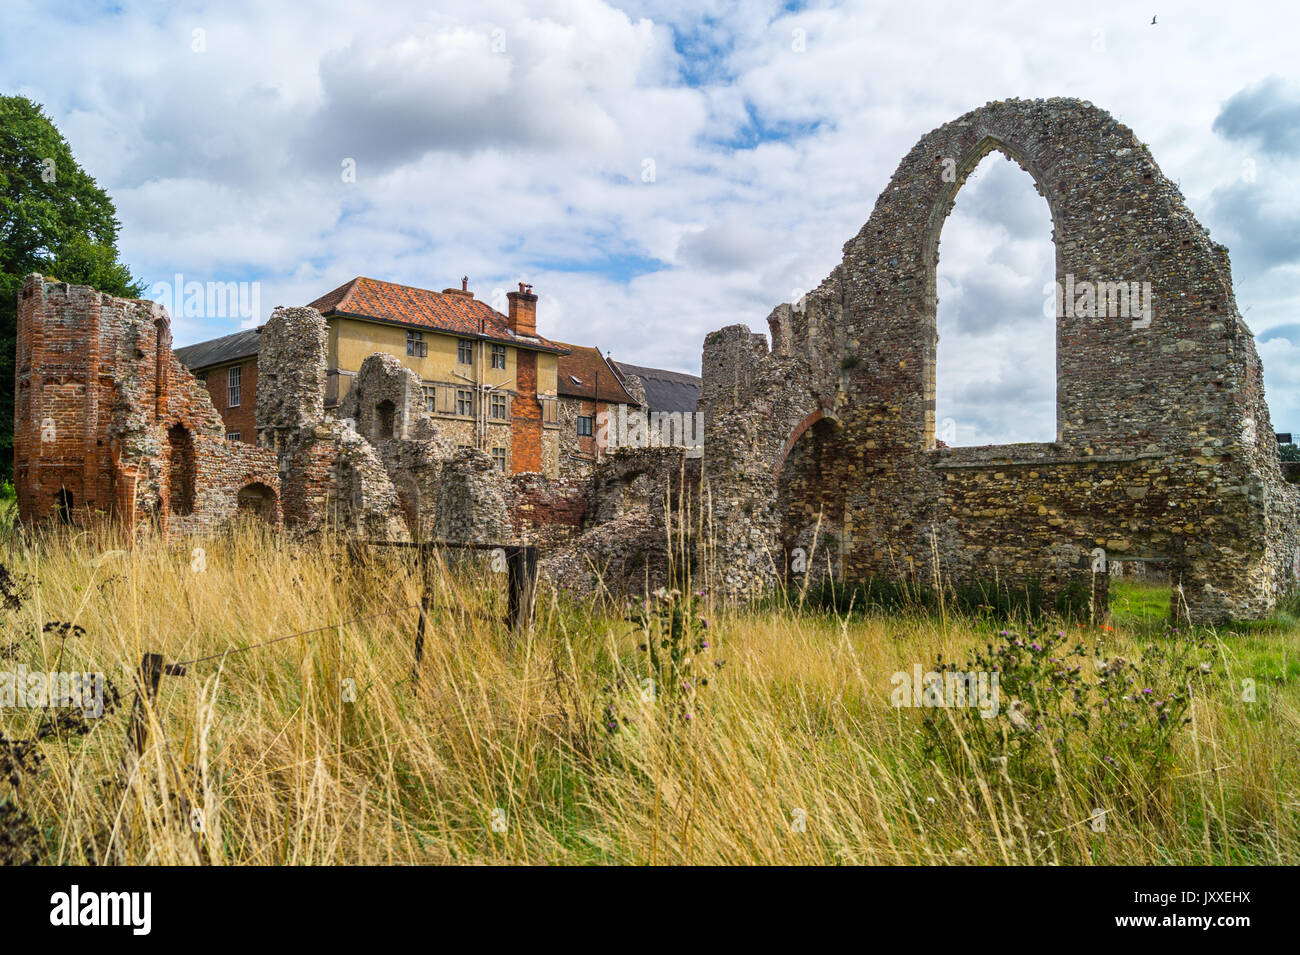 Ruins of Augustinian Premonstratensian Leiston Abbey, 1363, Leiston, Suffolk, England - Stock Image